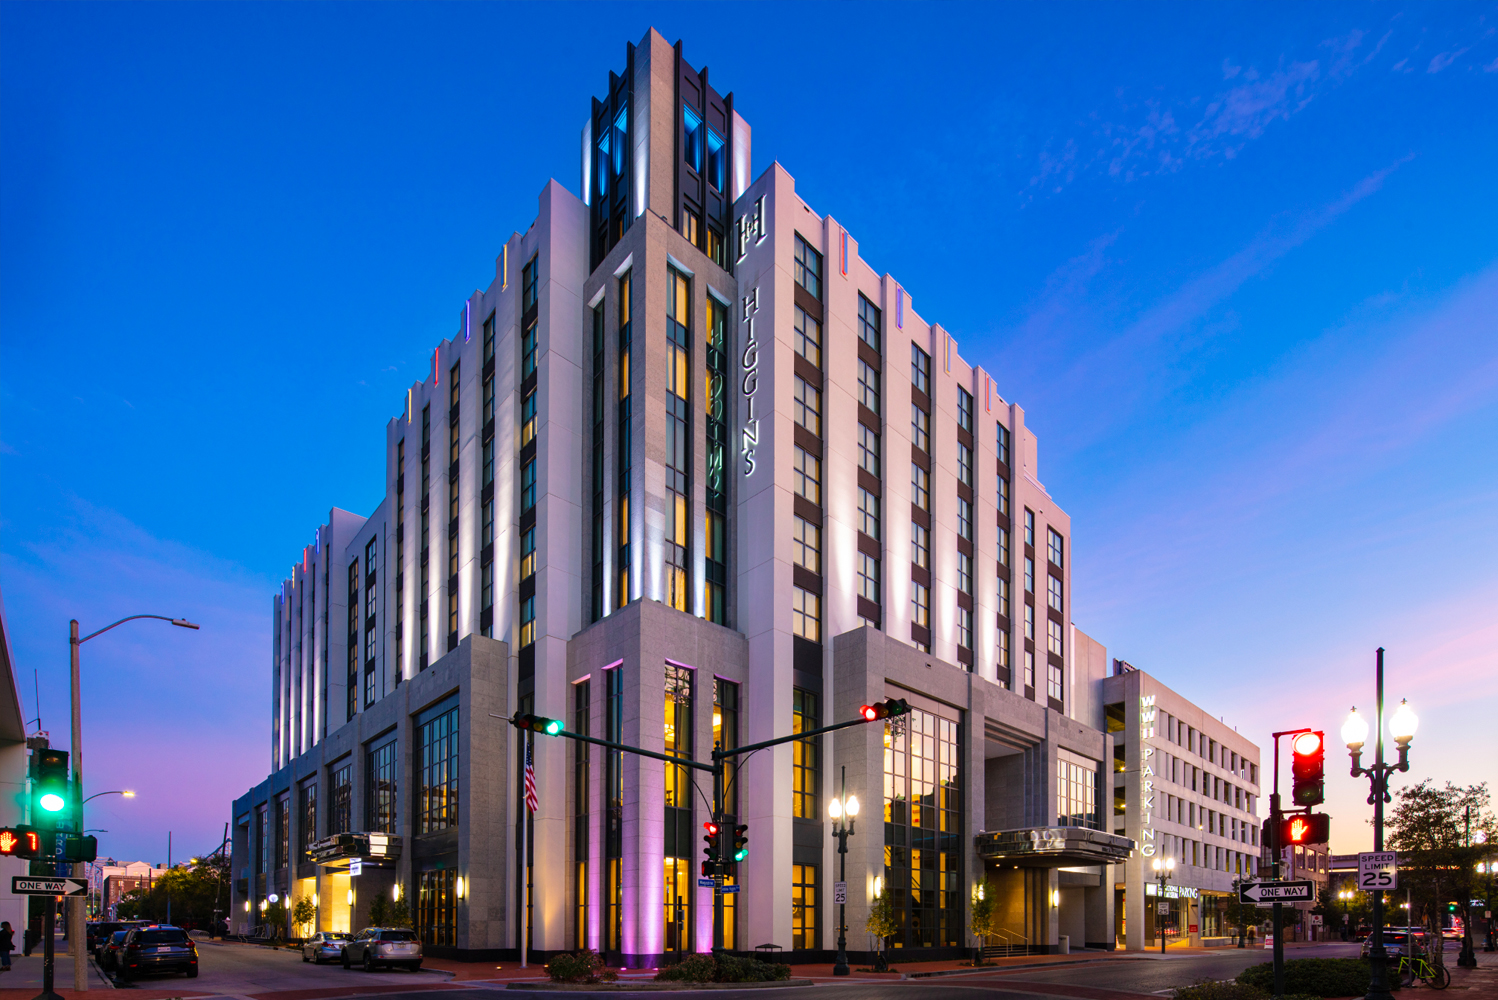 The National WWII Museum opened its landmark hotel property, The Higgins Hotel New Orleans, Curio Collection by Hilton. Architectural firm Nichols Brosch Wurst Wolfe & Associates gave the hotel its 1940s-themed details.